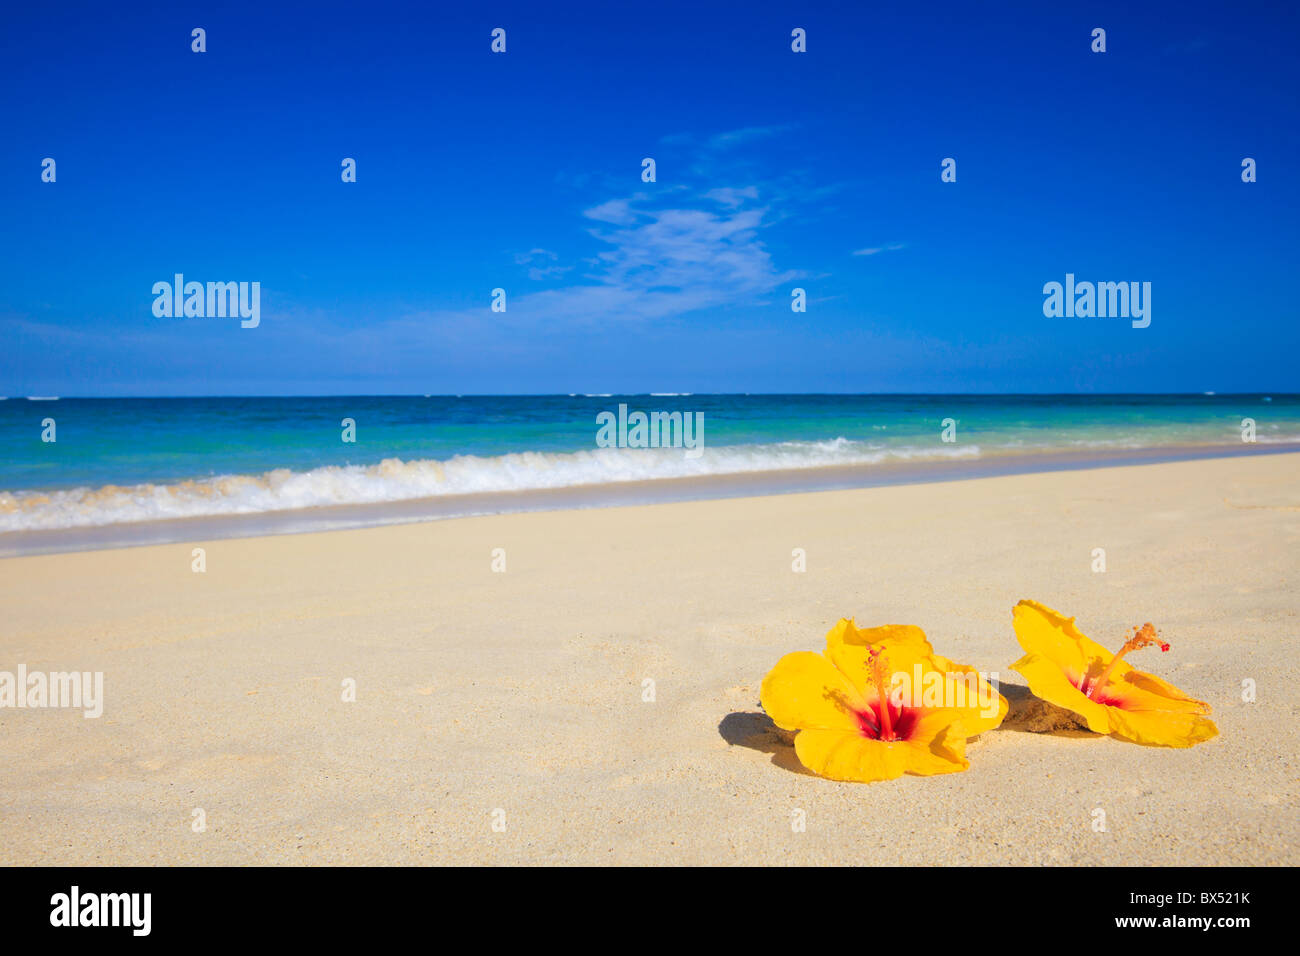 beach hibiscus stockfotos beach hibiscus bilder alamy. Black Bedroom Furniture Sets. Home Design Ideas